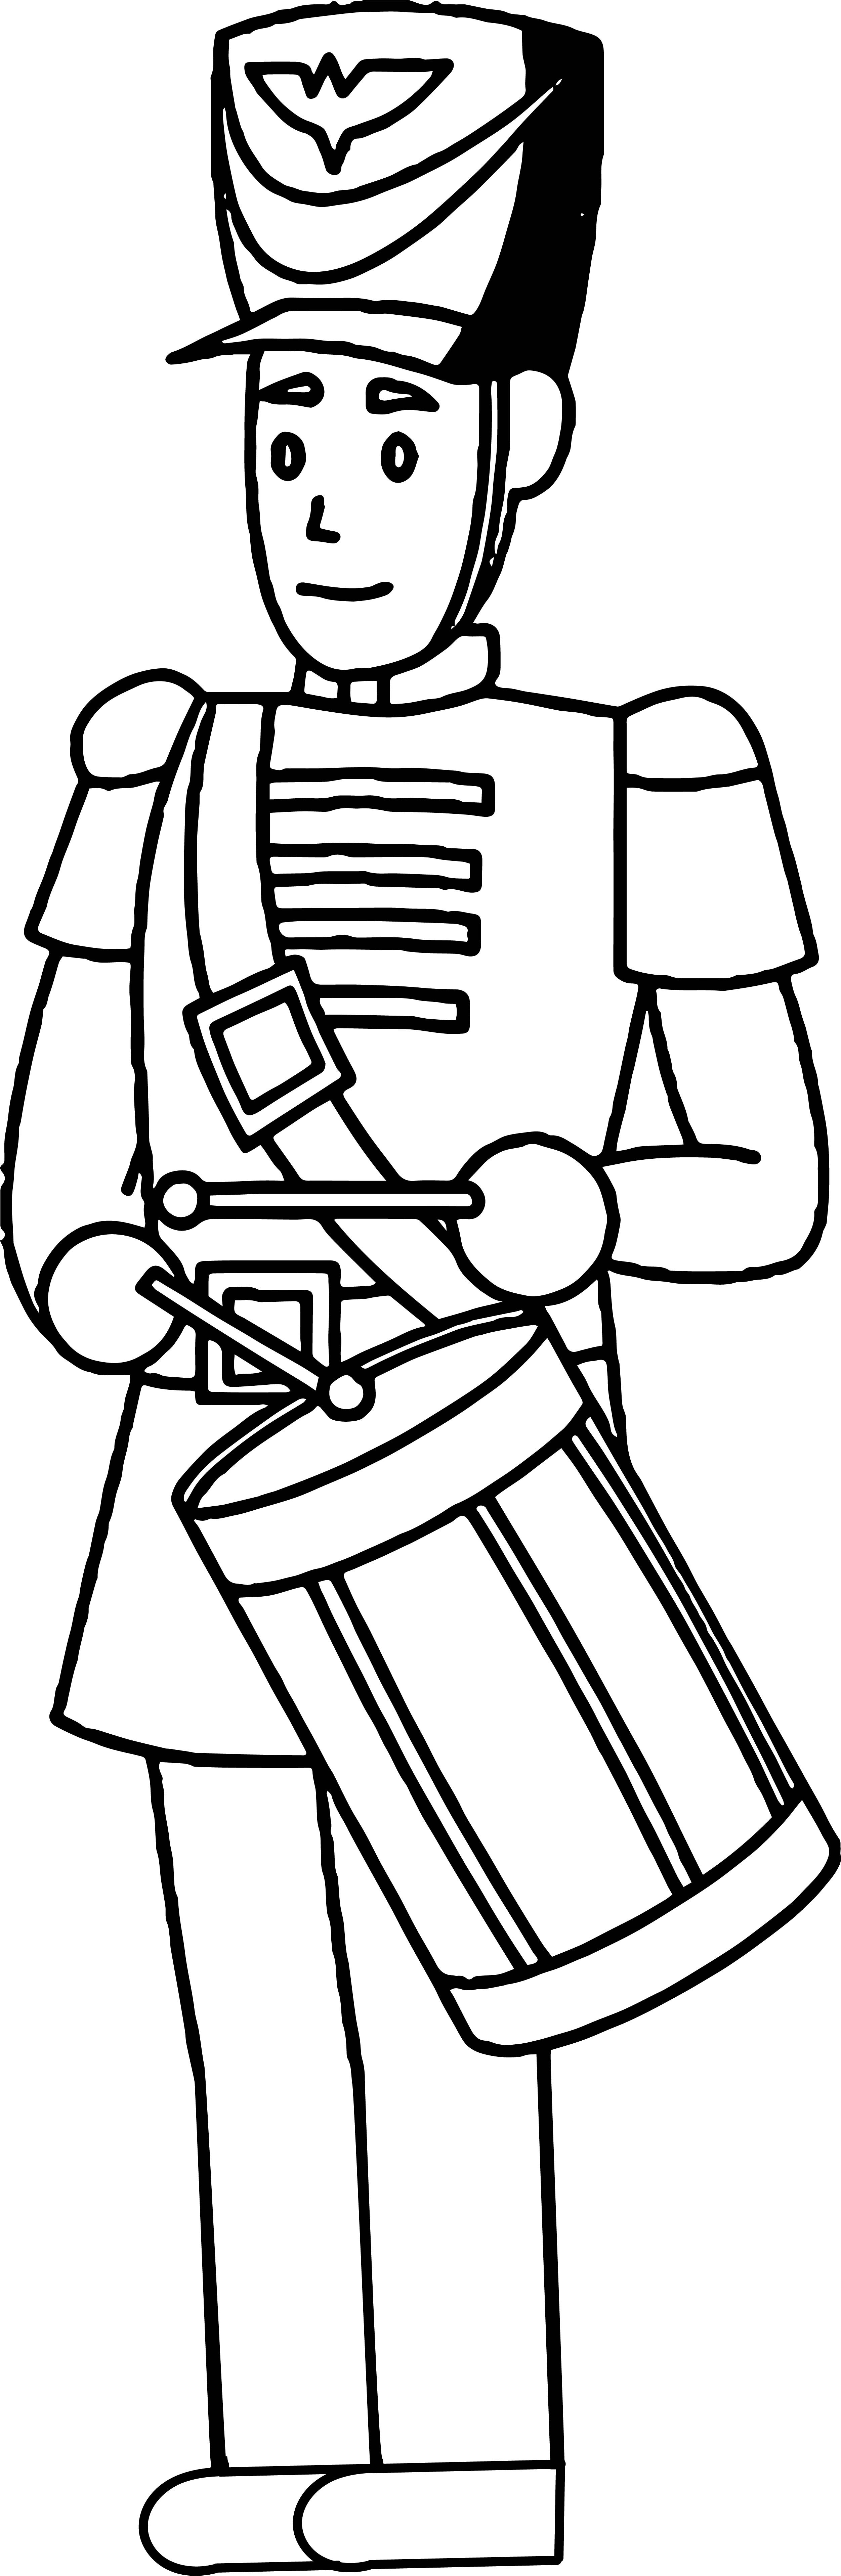 Wood Toy Soldier Coloring Page Wecoloringpage